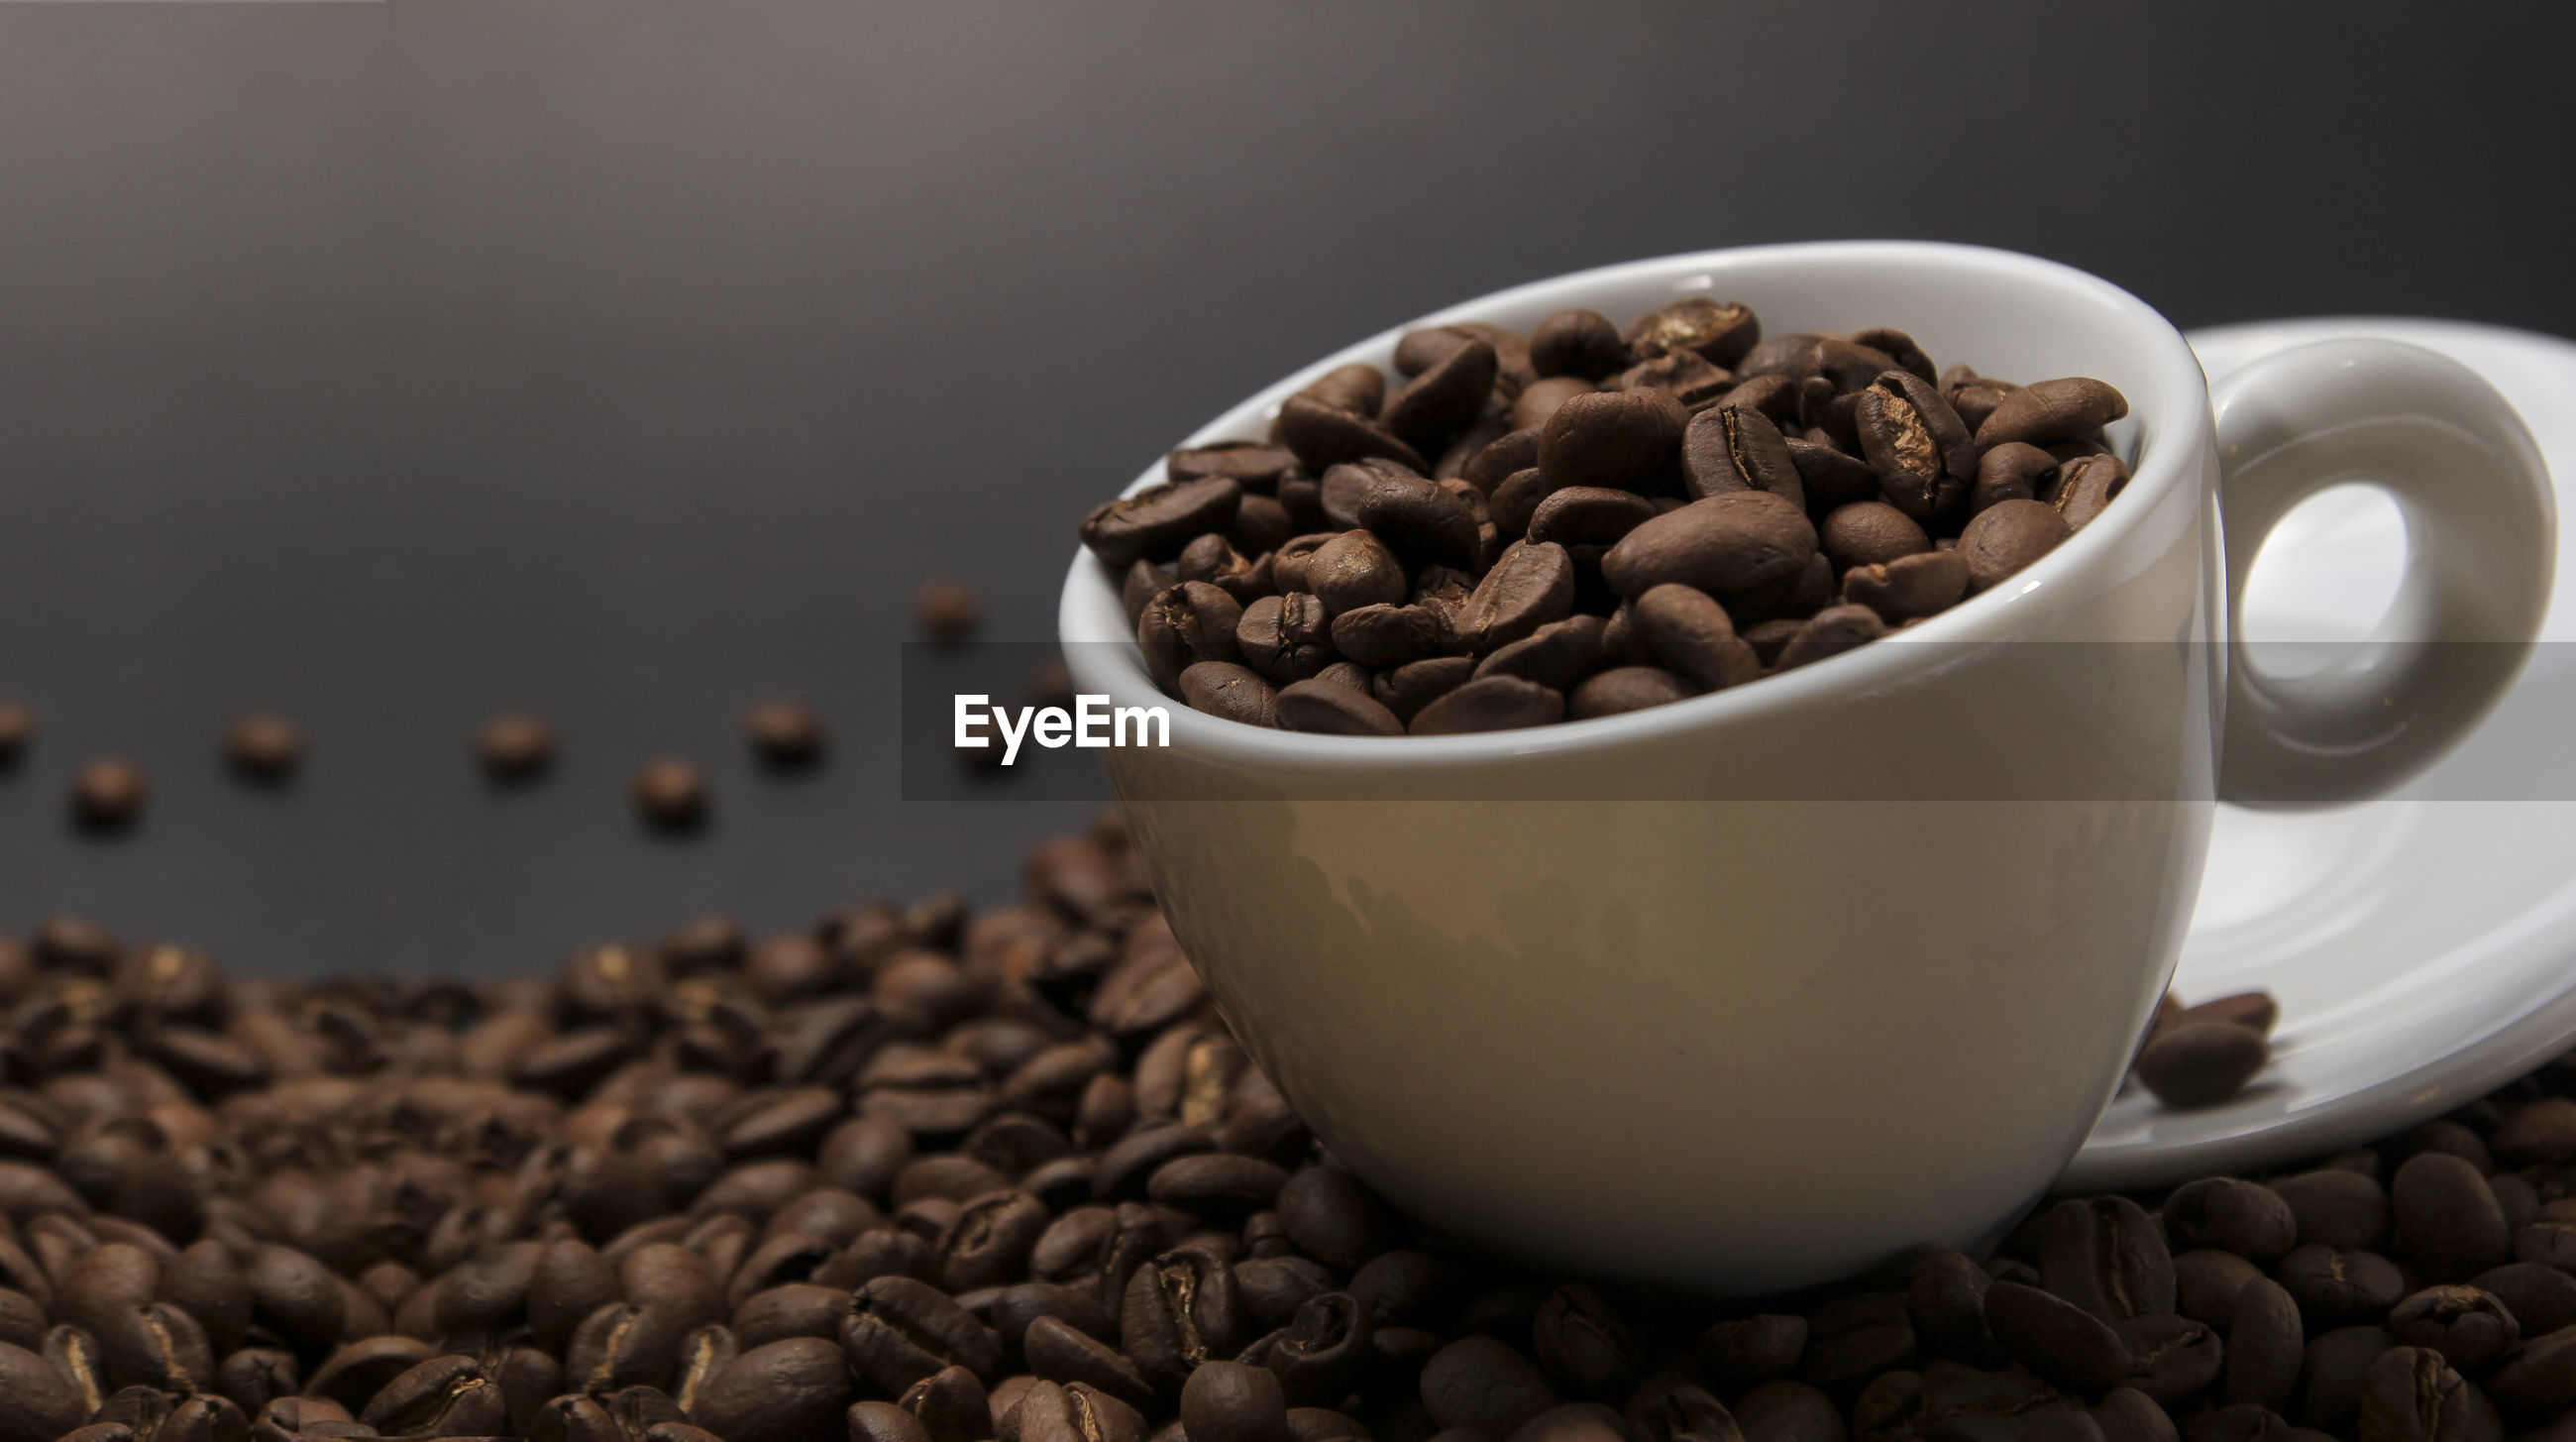 Close-up of coffee cup with beans